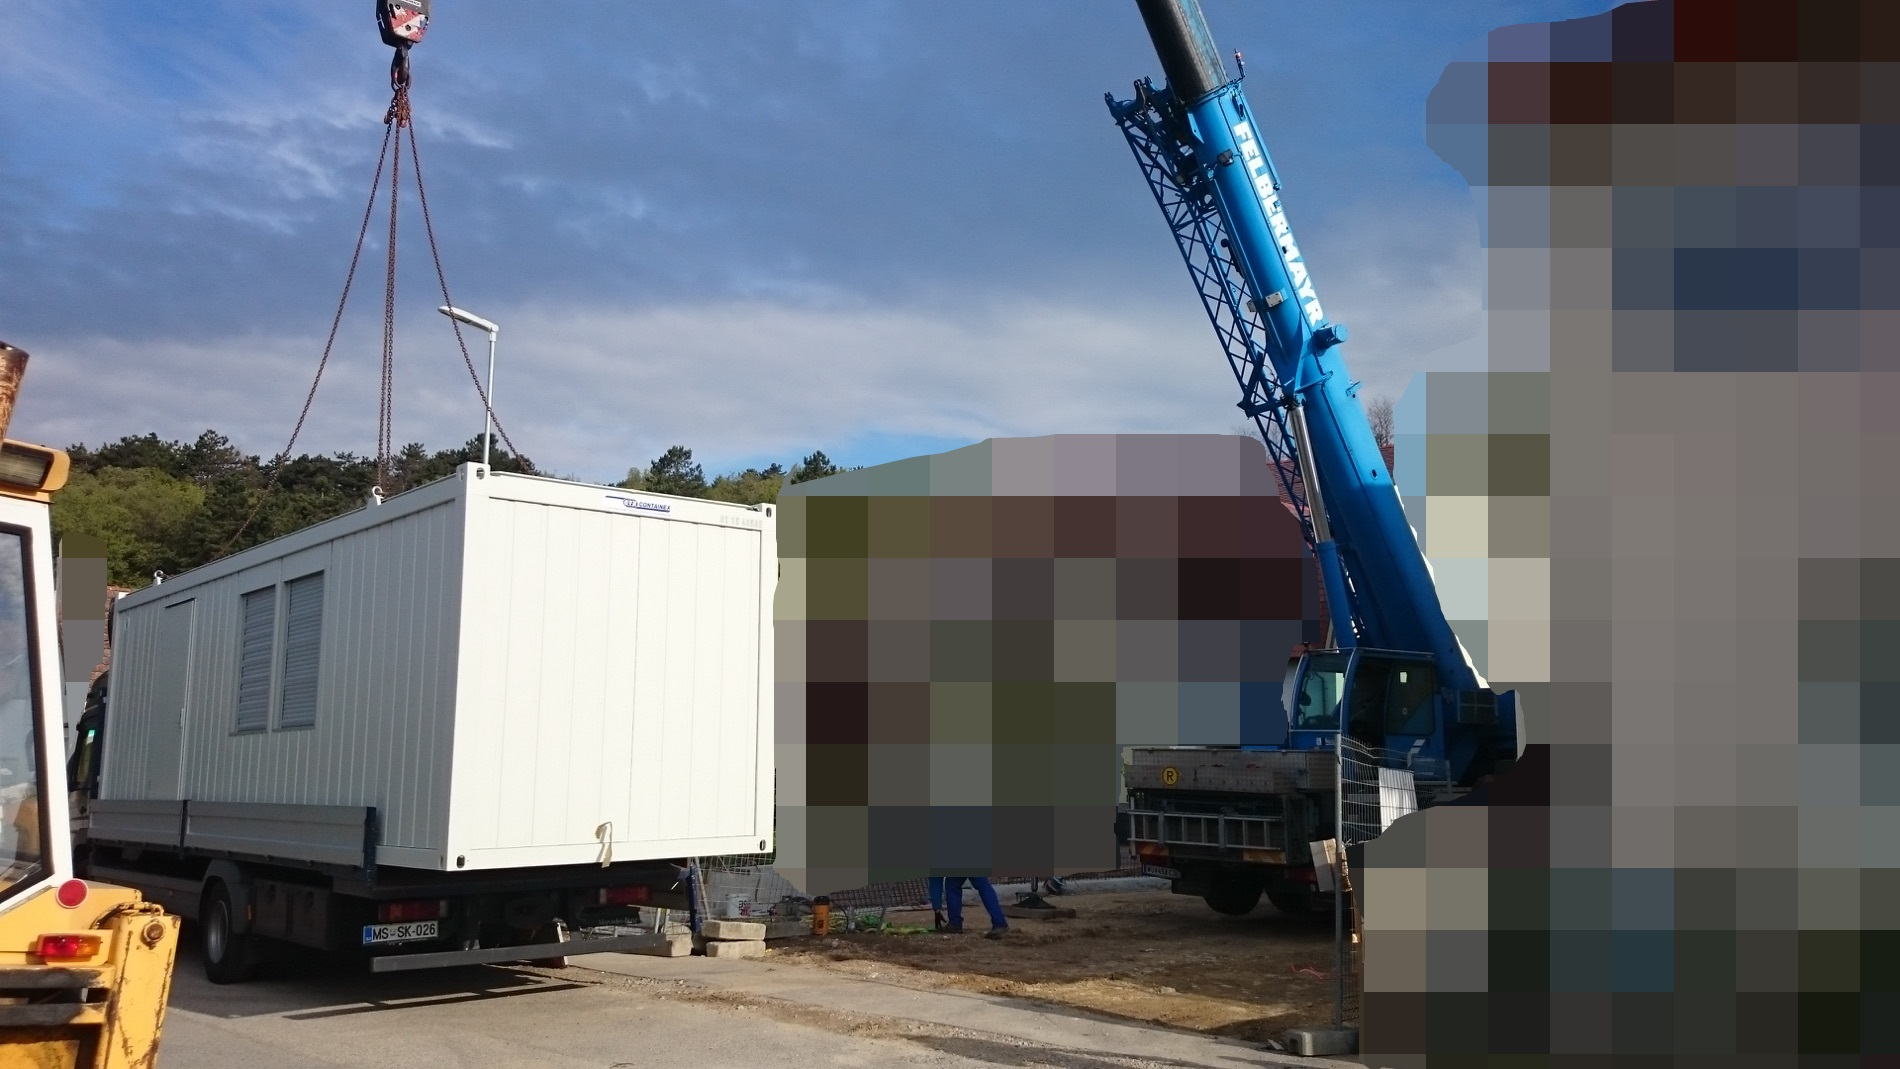 j-ontheroad.at – Leben im Container